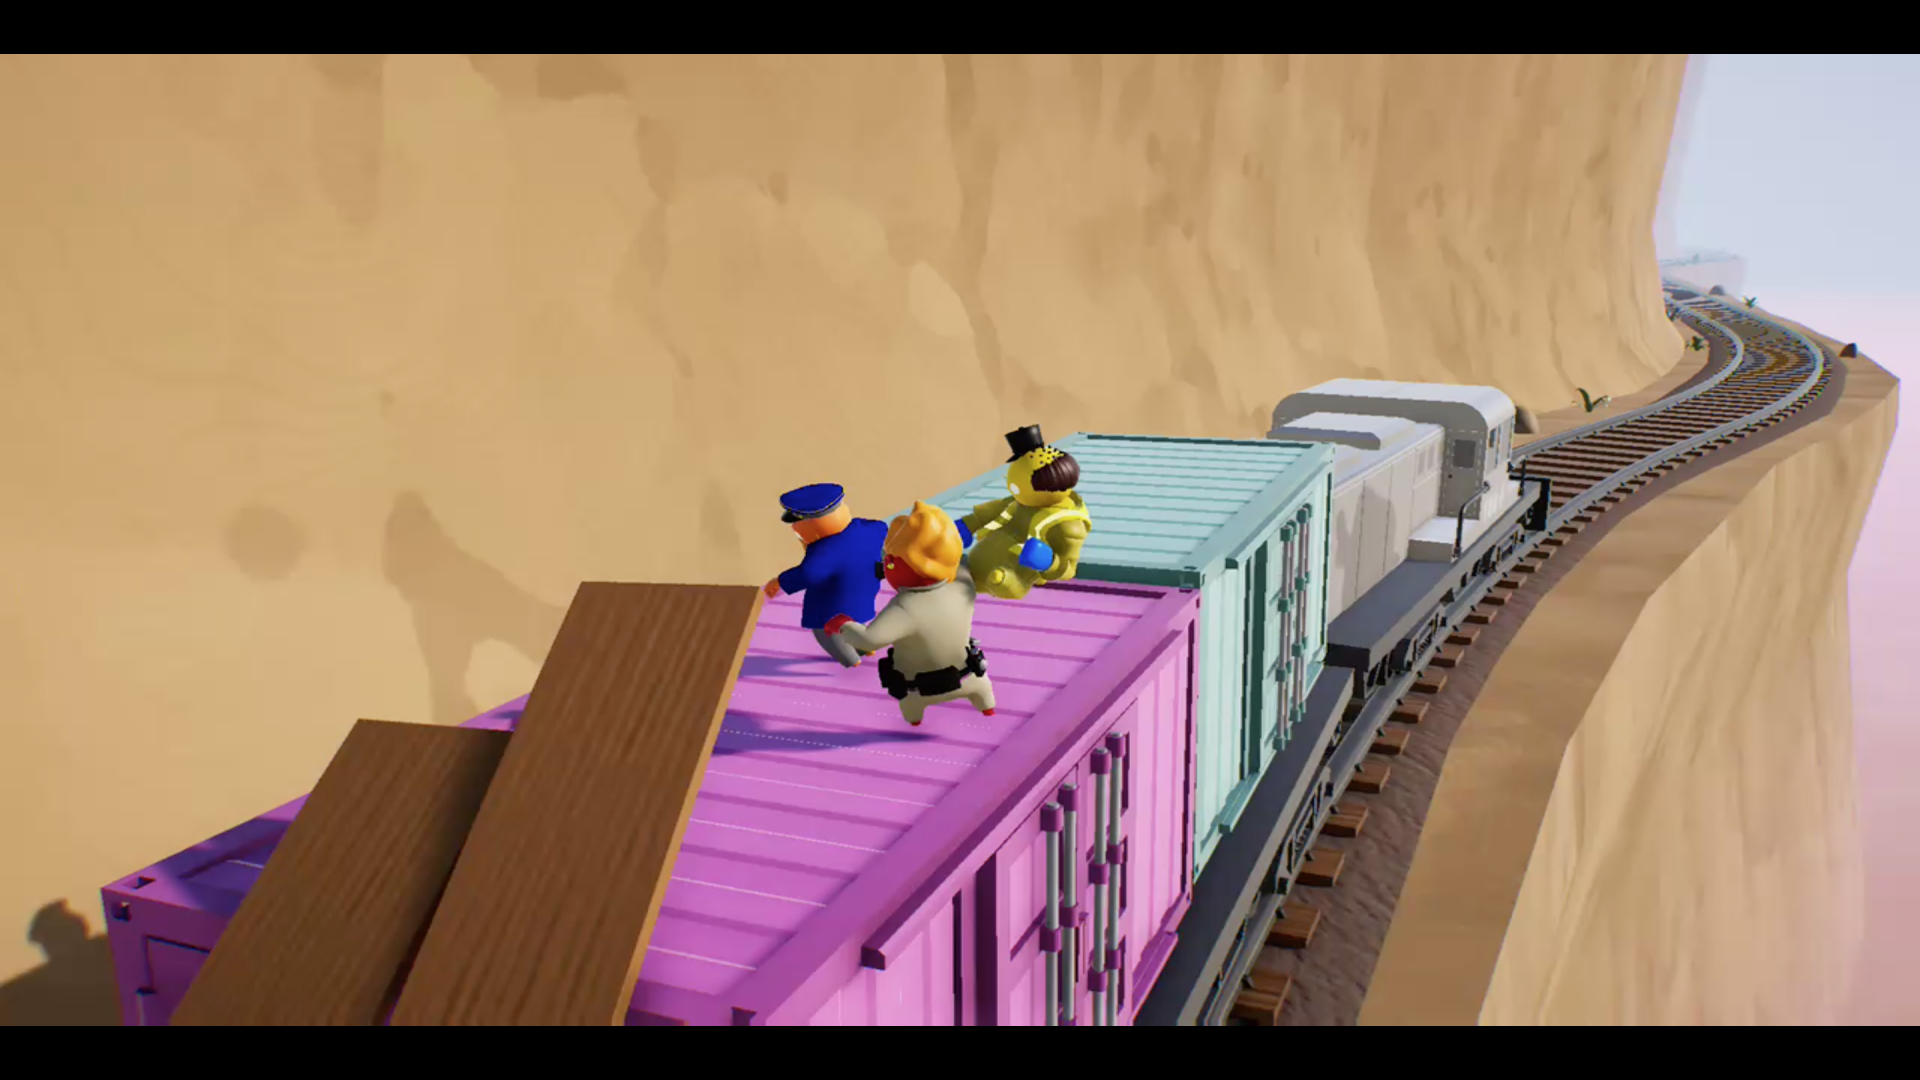 The precarious train level in Gang Beasts